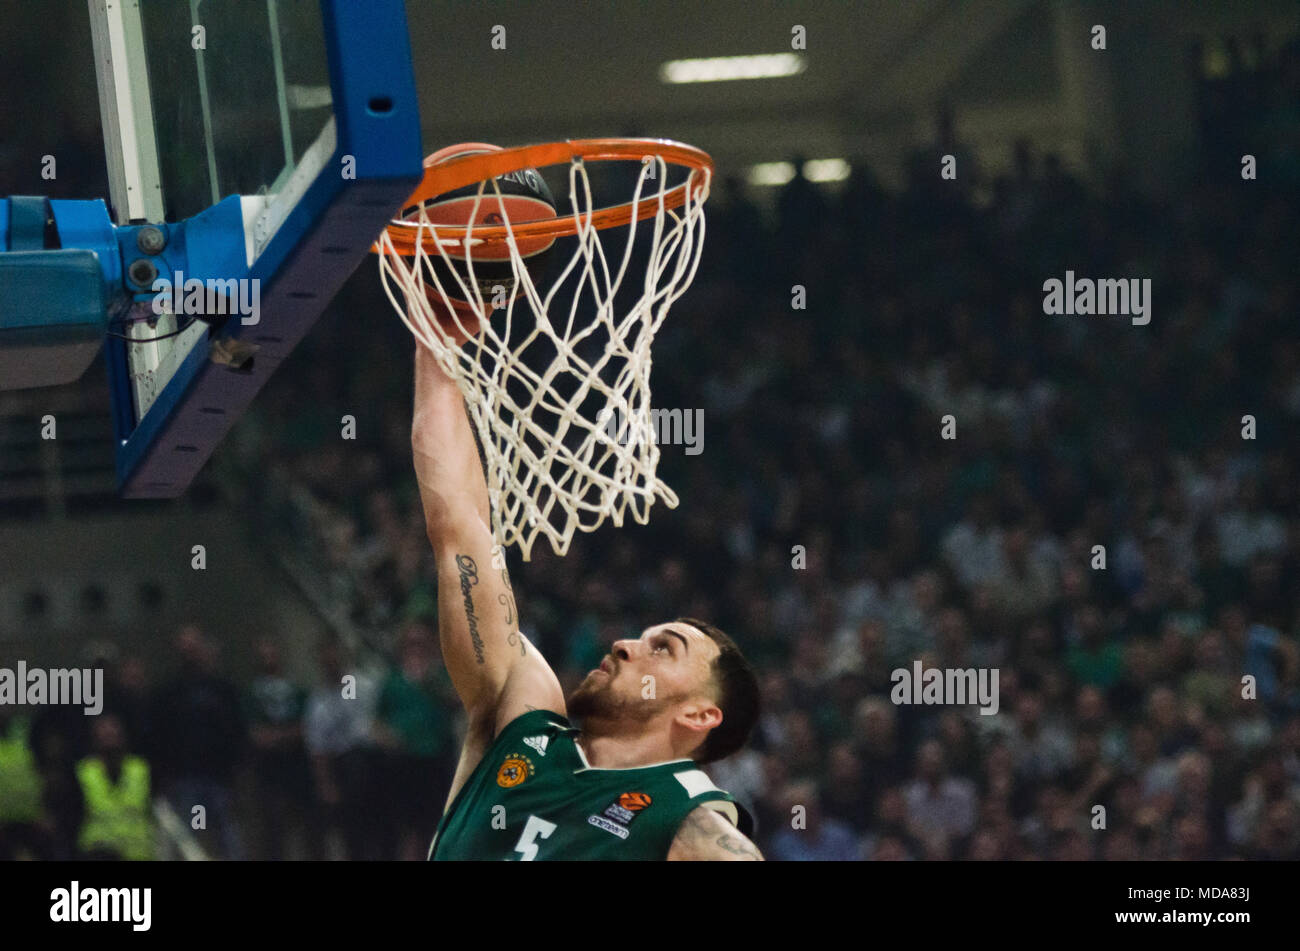 7062d49c761 ... Panathinaikos Superfoods Athens in action during the Turkish Airlines  Euroleague Play Offs Game 1 between Panathinaikos Superfoods Athens v Real  Madrid ...